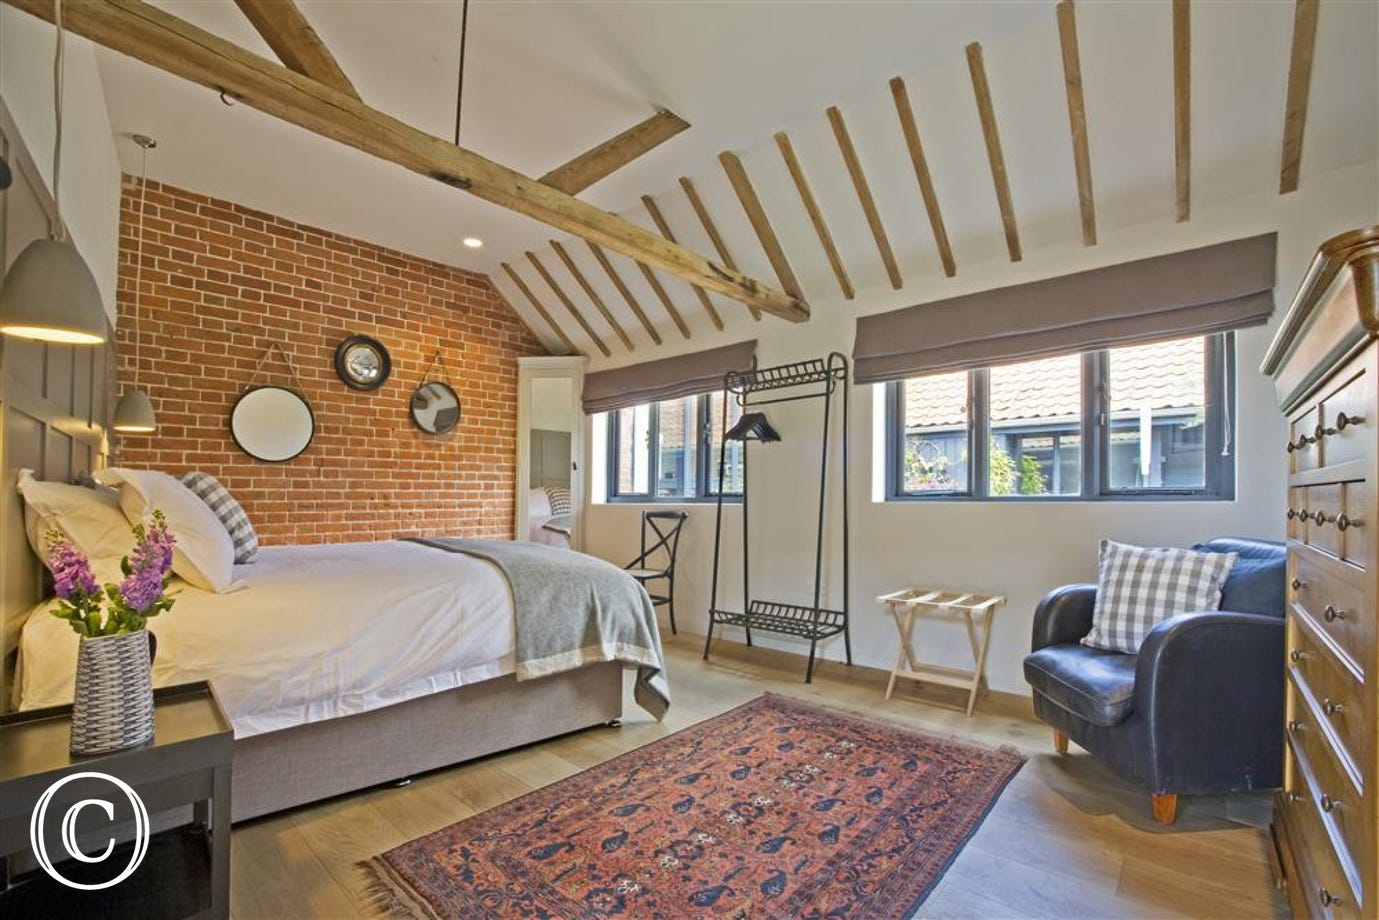 The accommodation in the barn is flexible with three ground floor bedrooms and two shower rooms and two bedrooms with ensuite bath/shower rooms on the first floor